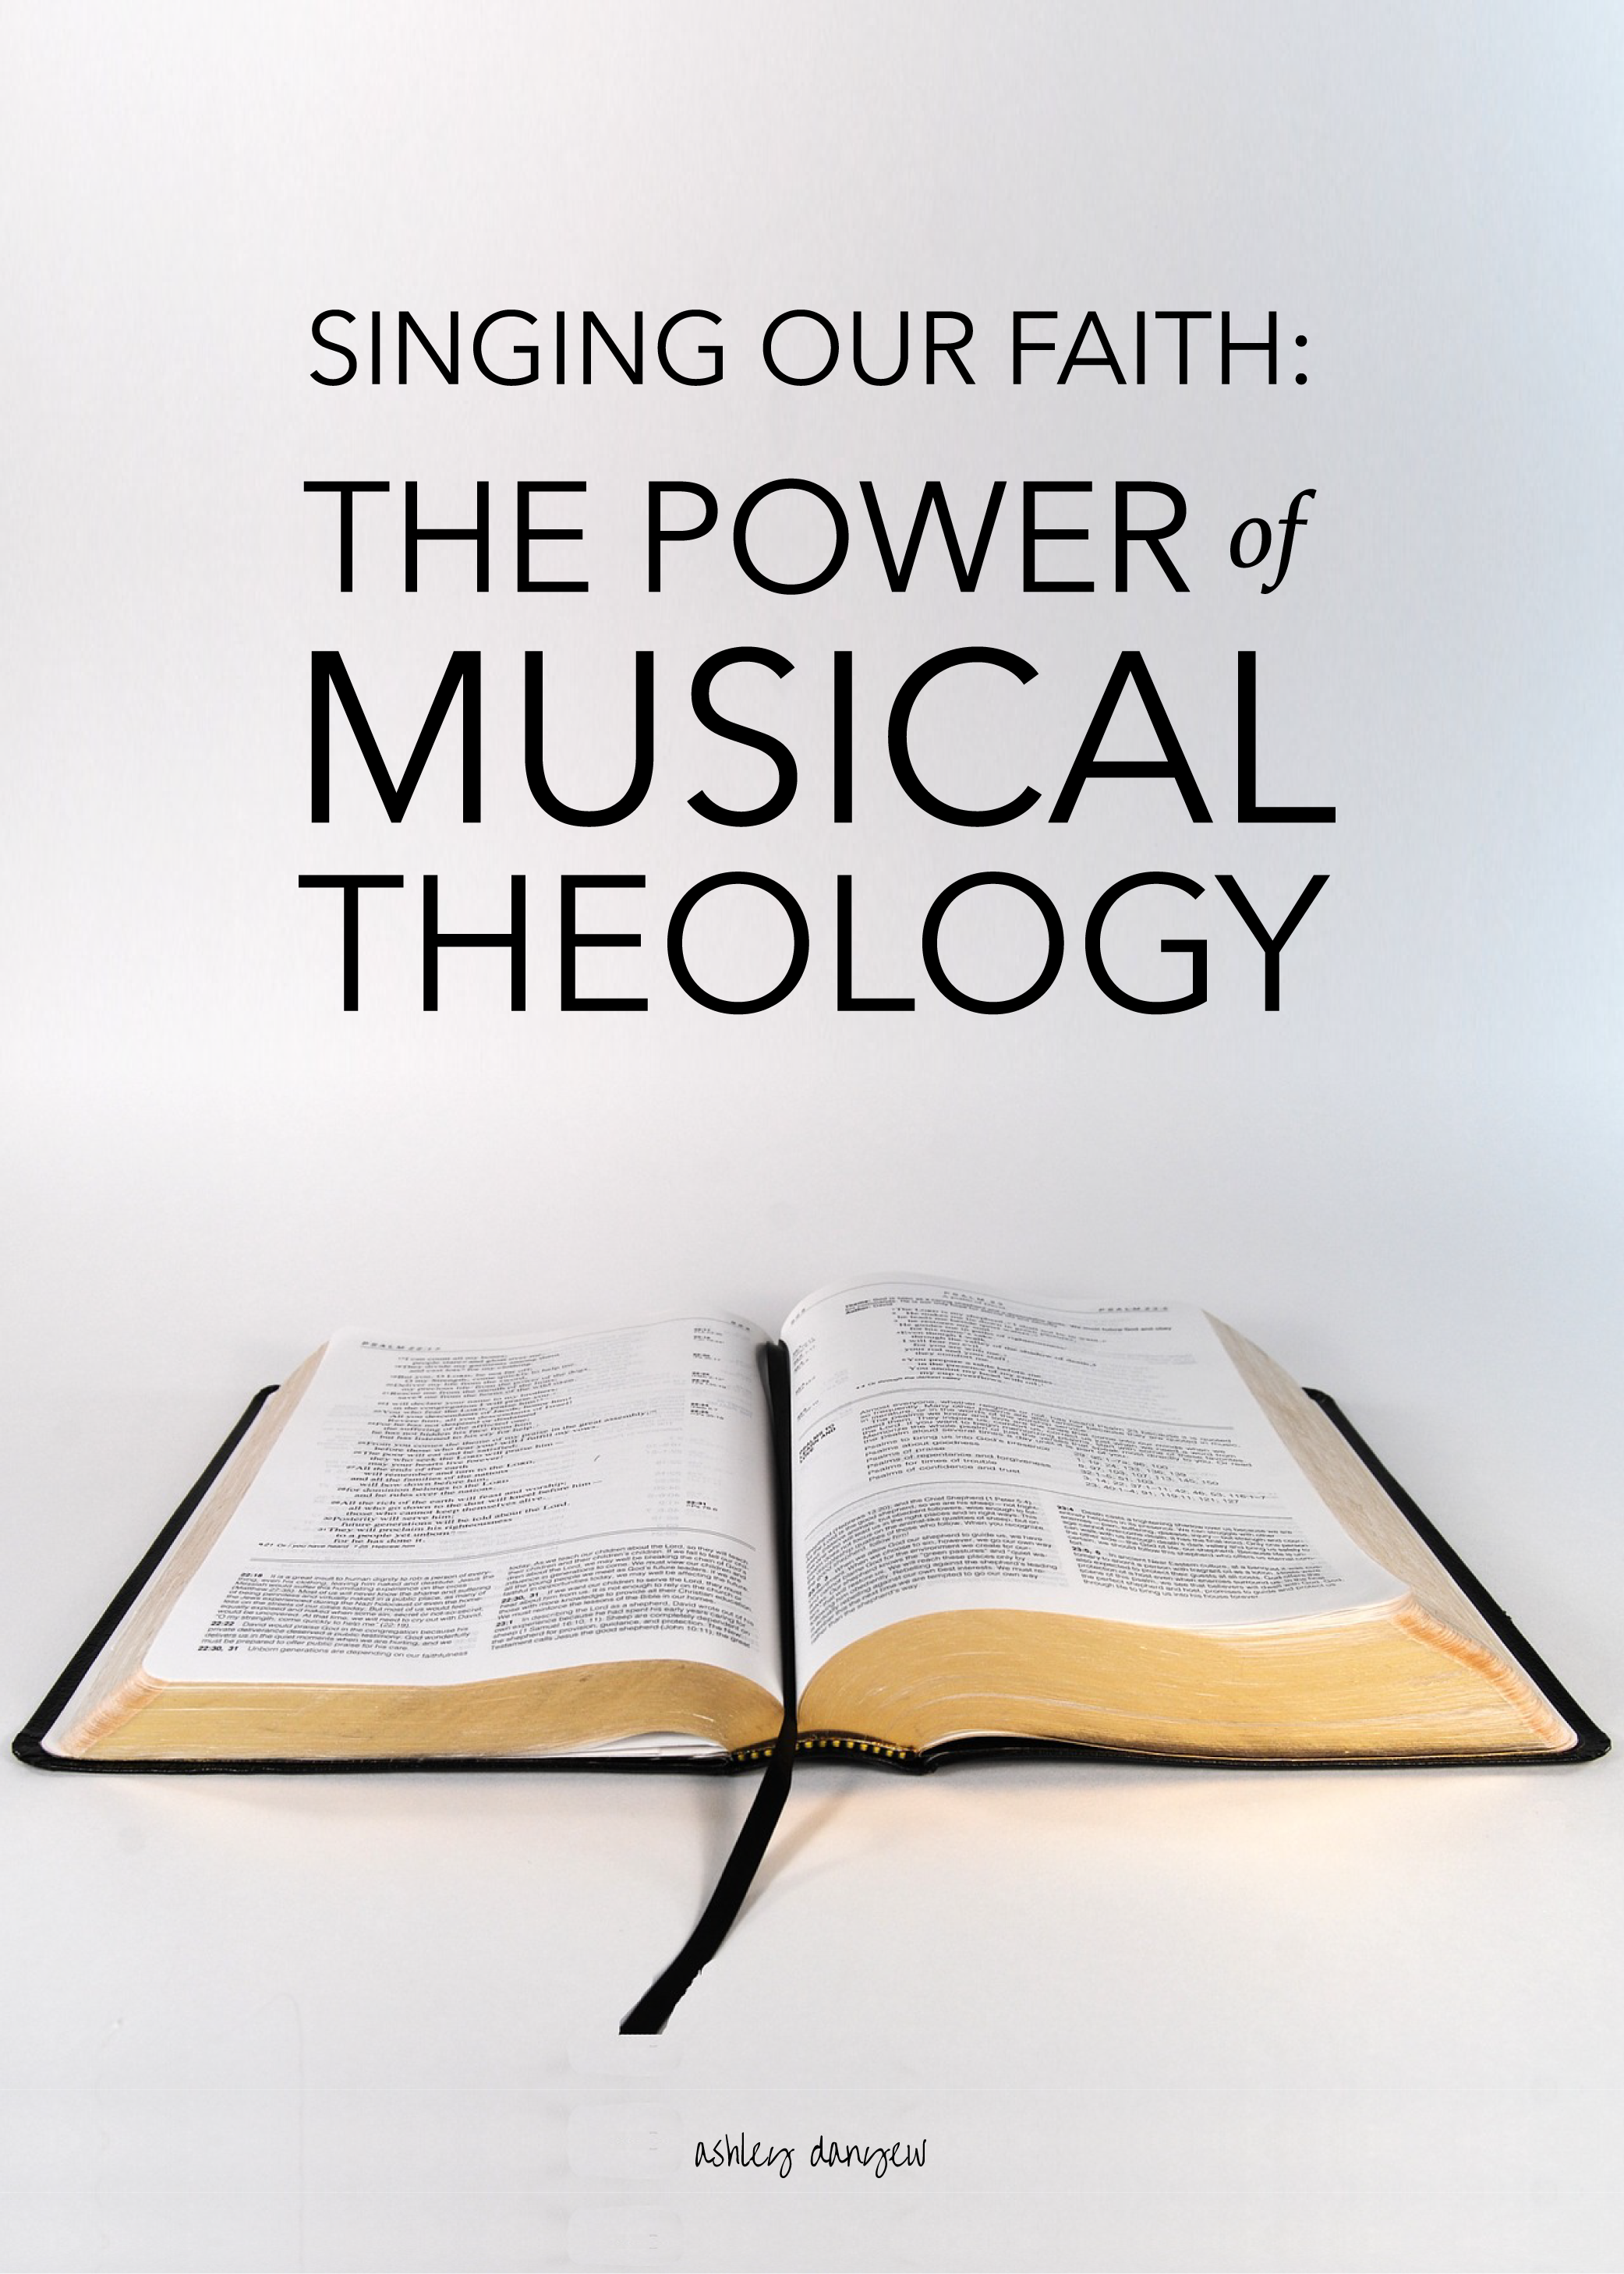 Copy of Singing Our Faith: The Power of Musical Theology